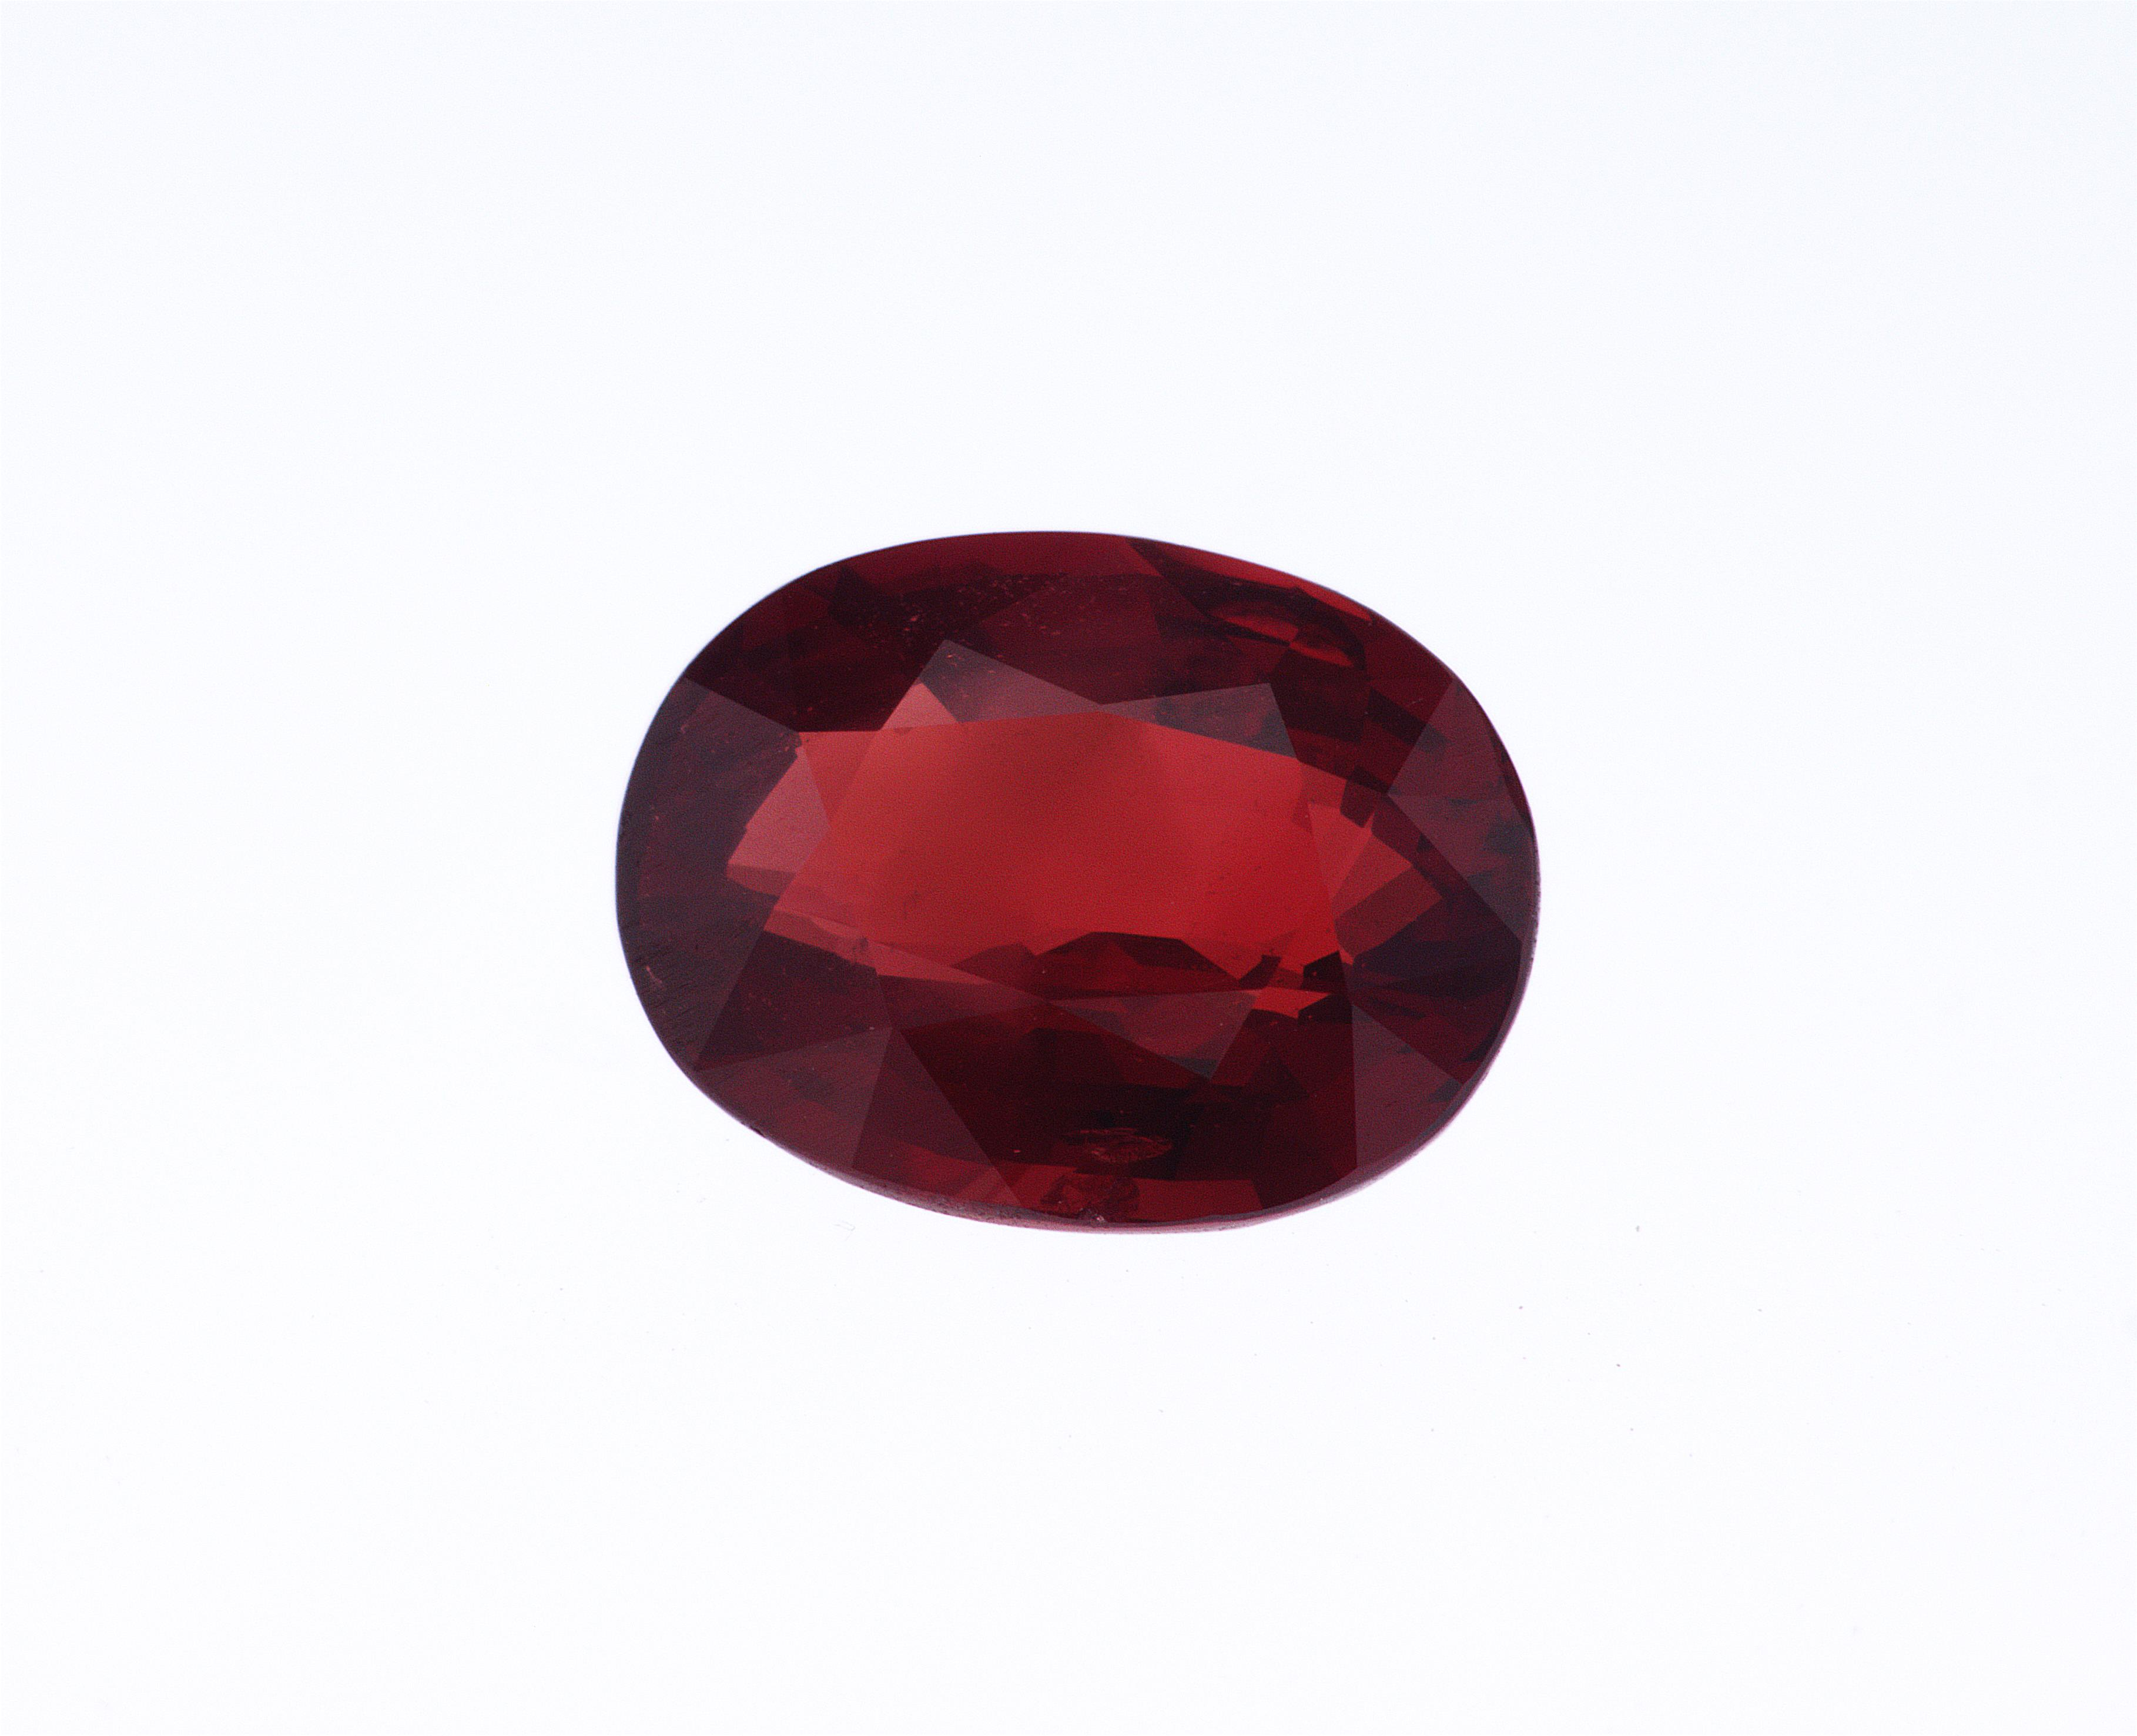 2.03 ct vivid red oval ruby